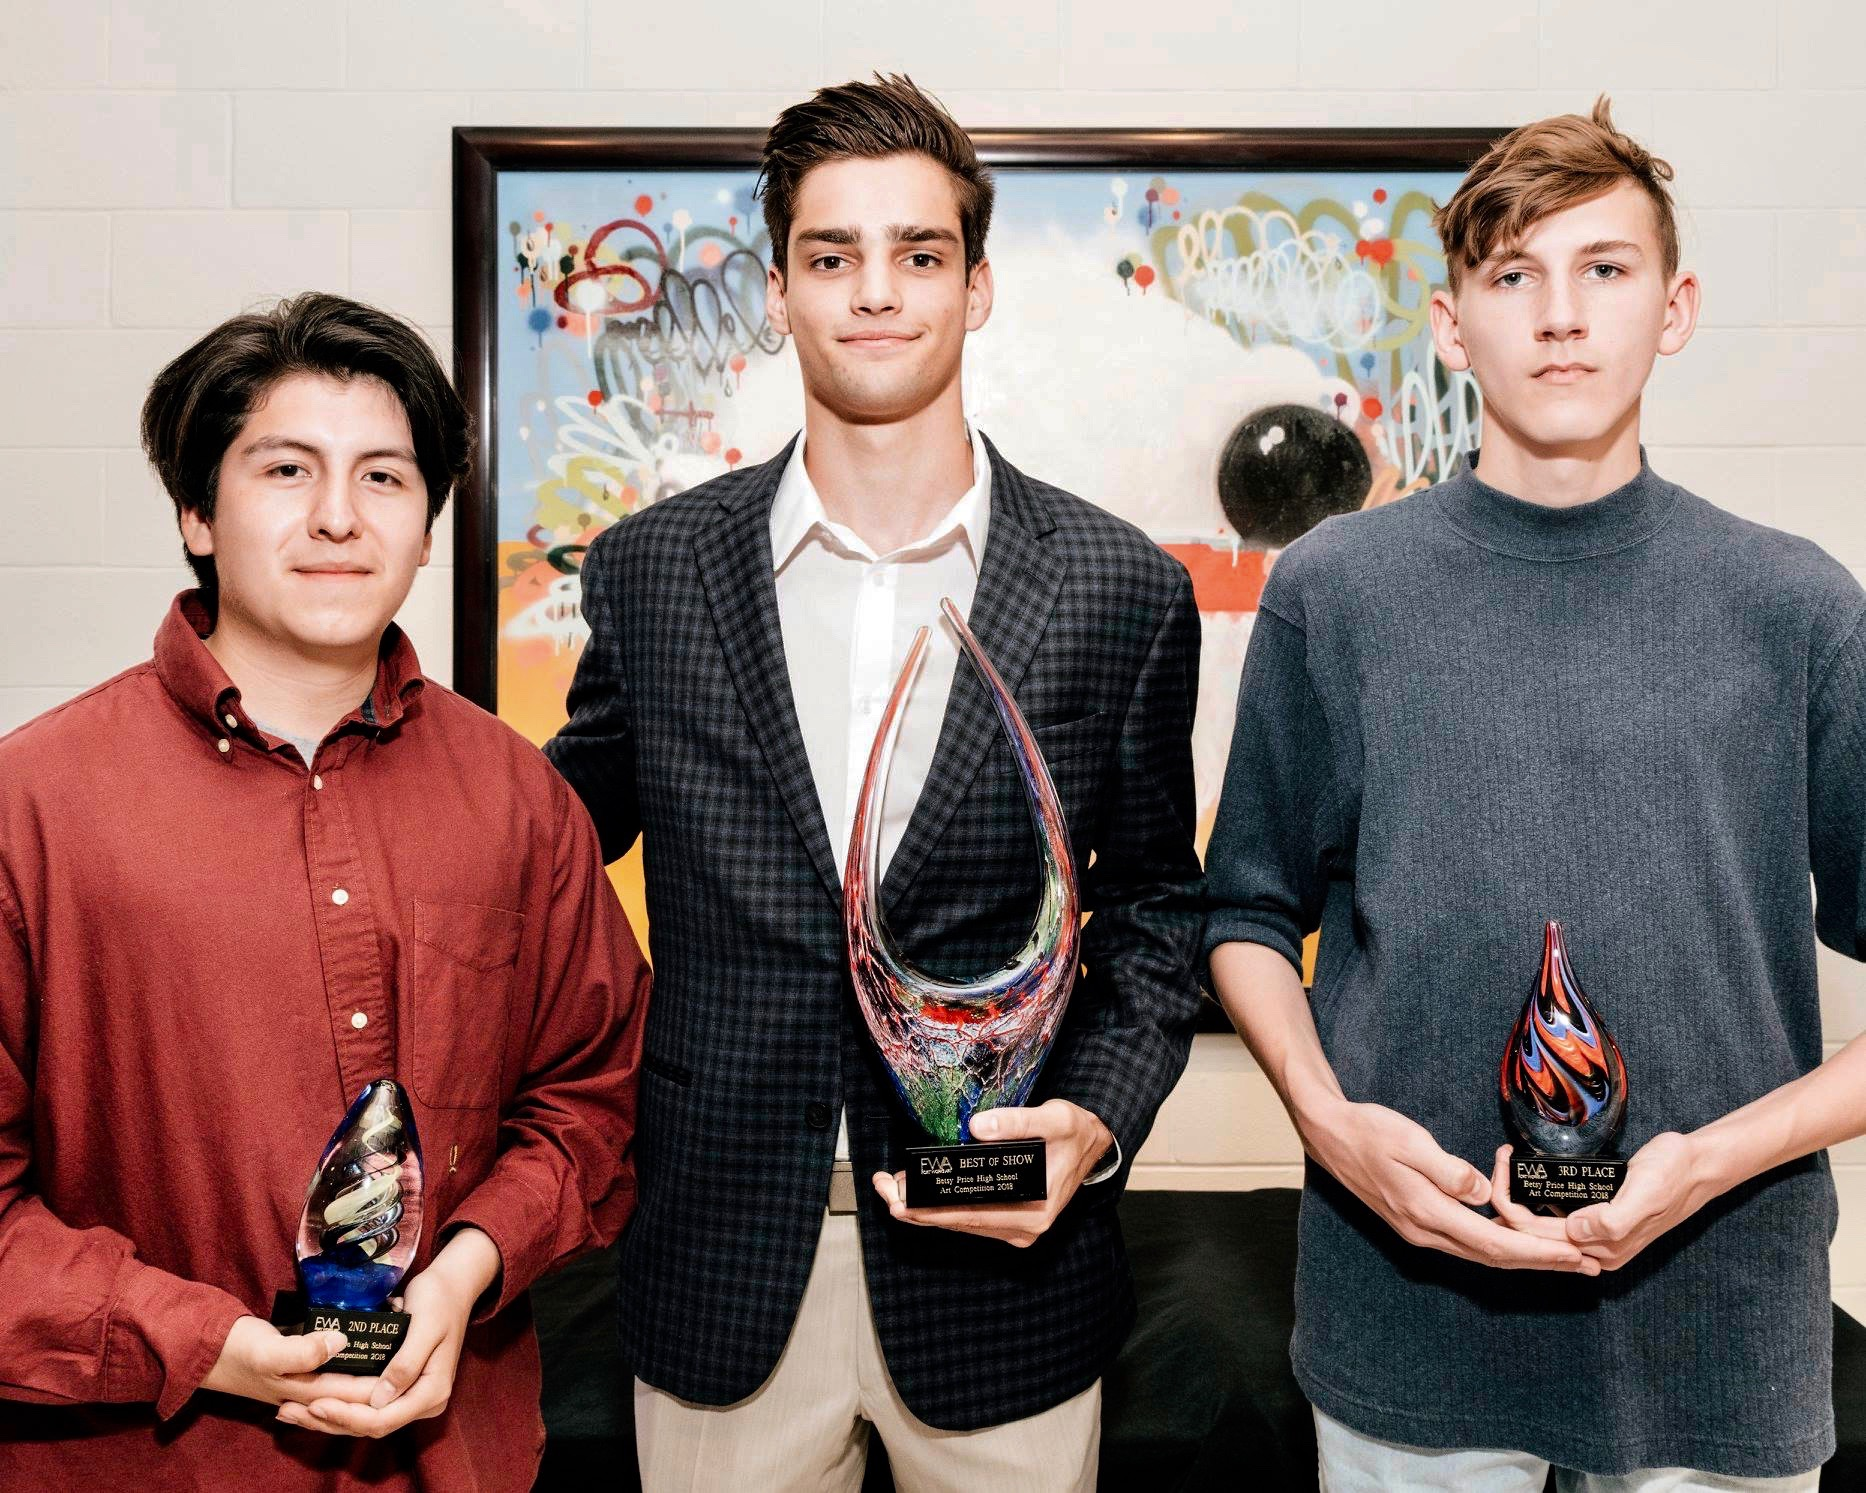 Winners of the 2018 Betsy Price Art Competition left to right: 2nd place winner Camilo Diaz, 1st place winner James Stupfel, 3rd place winner  Will Deshazo